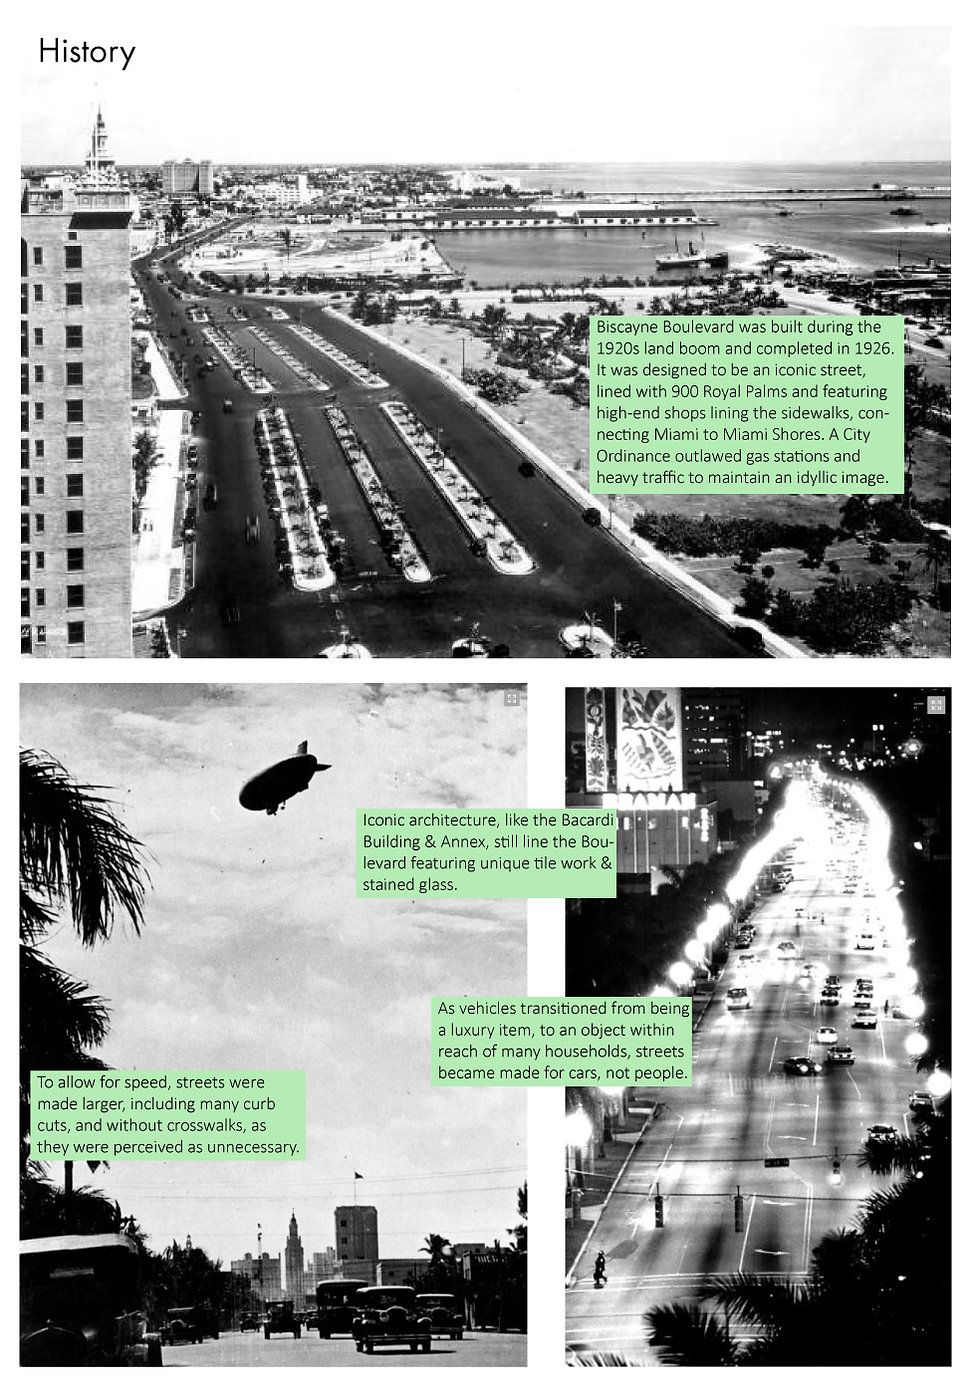 Reimagine Biscayne Boulevard-Future Vision Studios-The history of Biscayne Boulevard-Image Credit-Miami Herald-Pedestrian Car Oriented